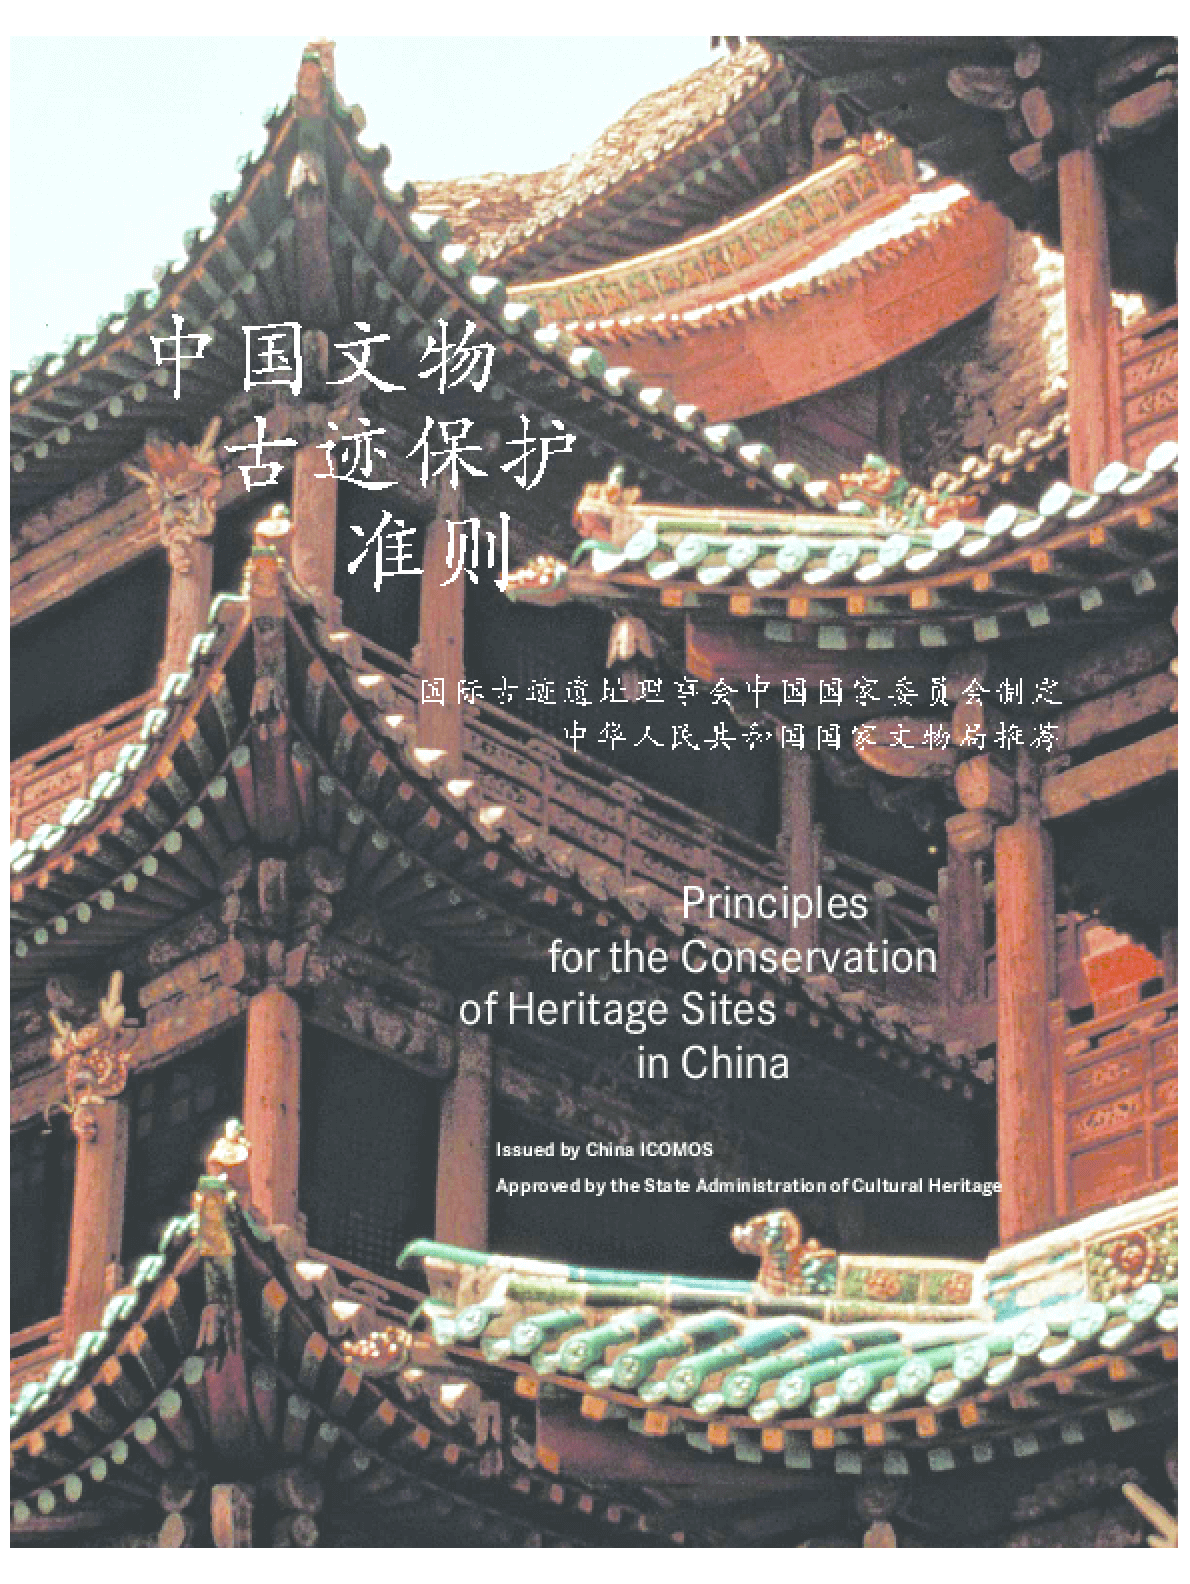 Principles for the Conservation of Heritage Sites in China